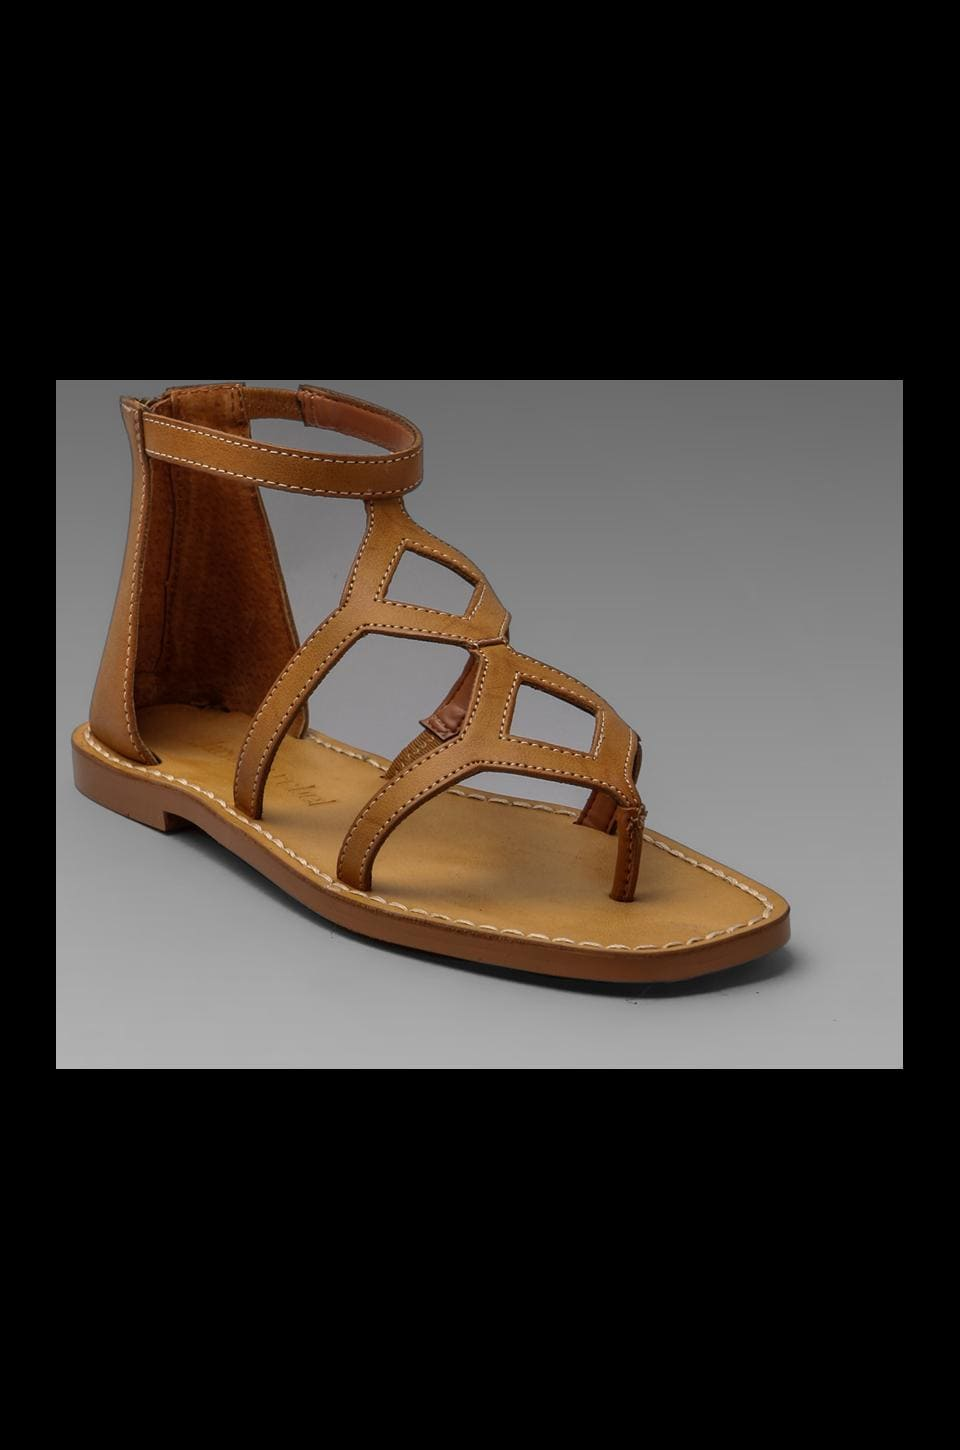 Luxury Rebel Kendall Sandal in Camel